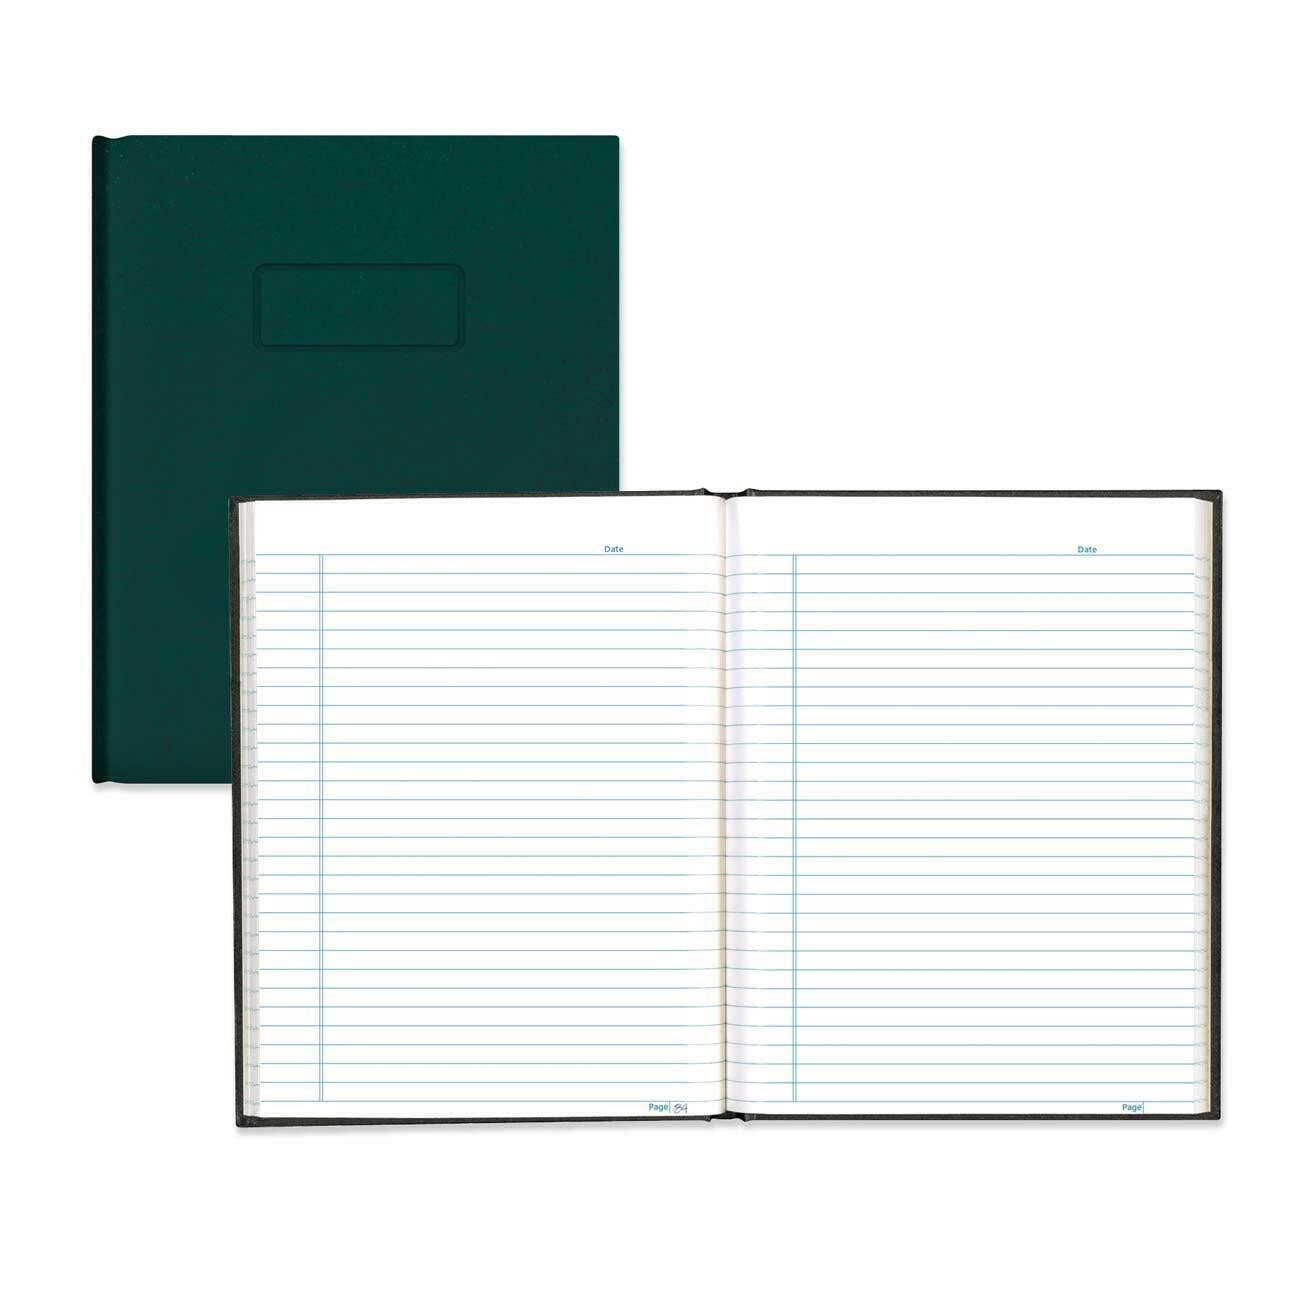 """Composition Book, Lined, Blueline Green, 192 Pages, 9 1/4"""" x 7 1/4"""""""